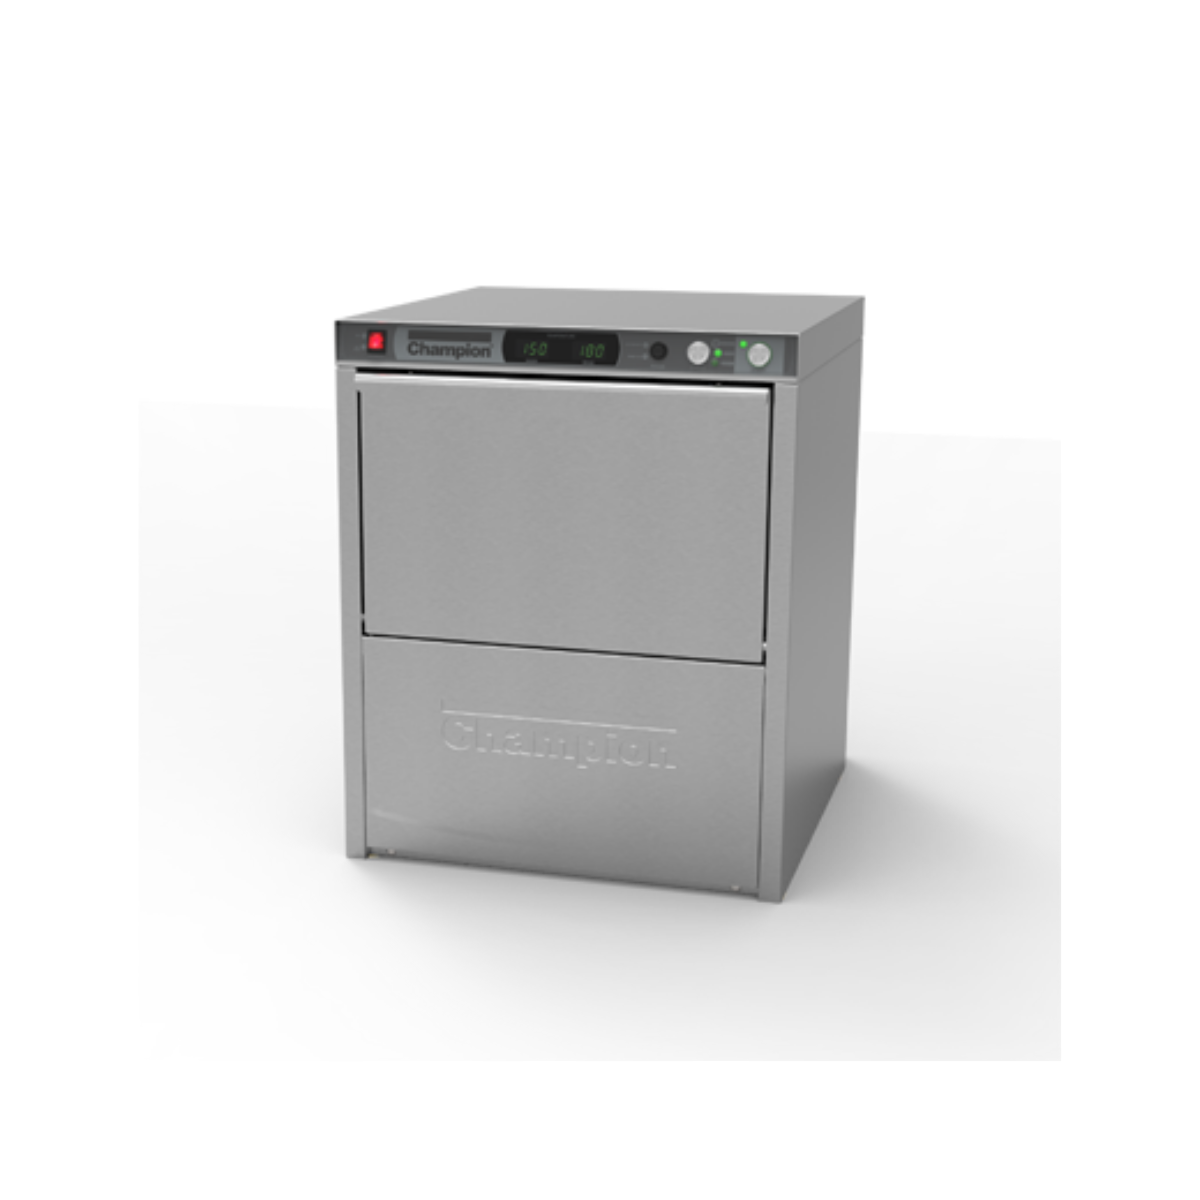 Champion UH330B Undercounter Dishwasher, High Temp